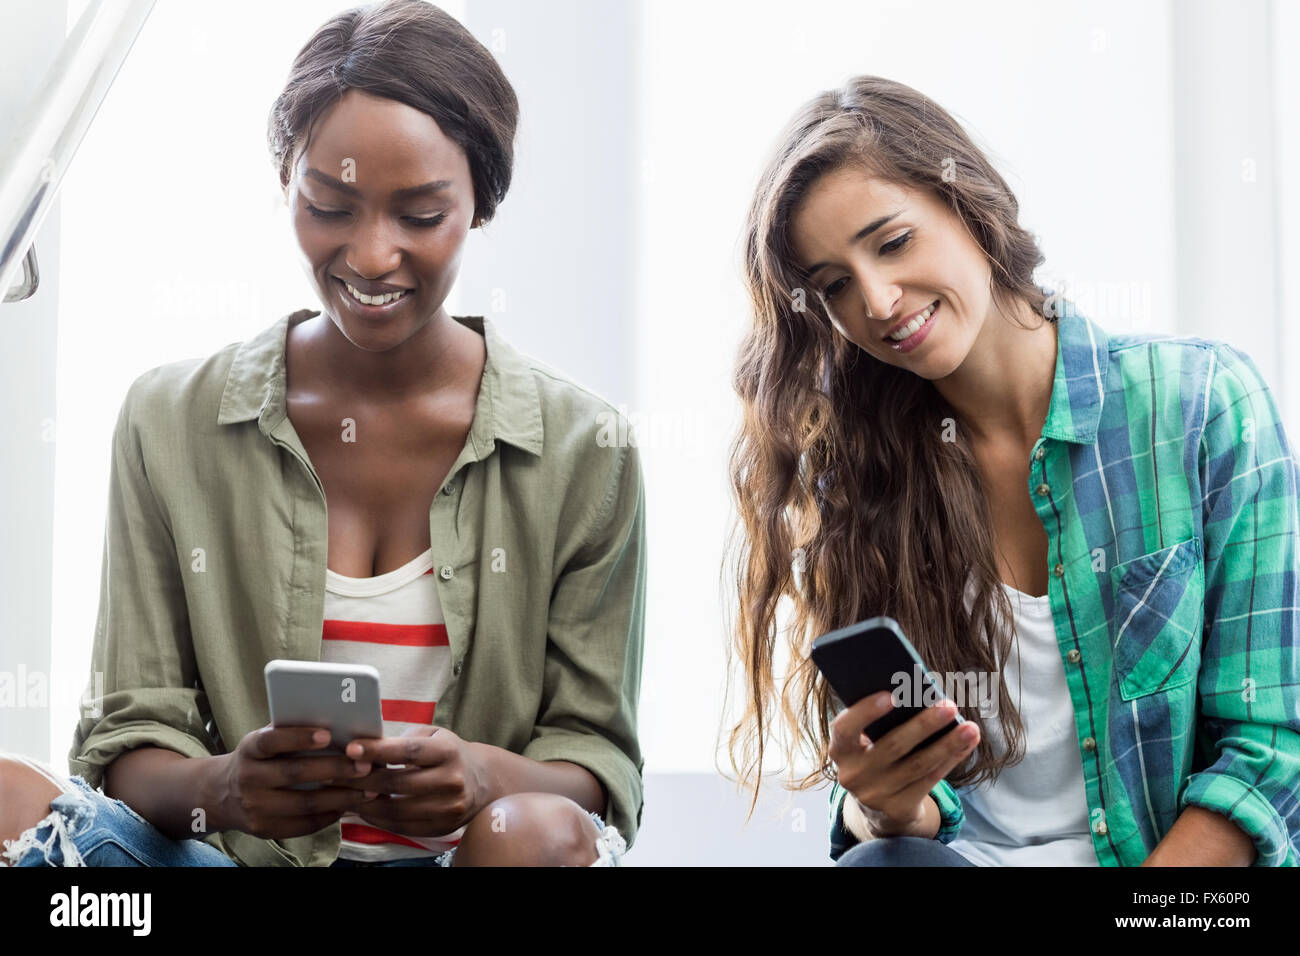 Friends using mobile phone - Stock Image